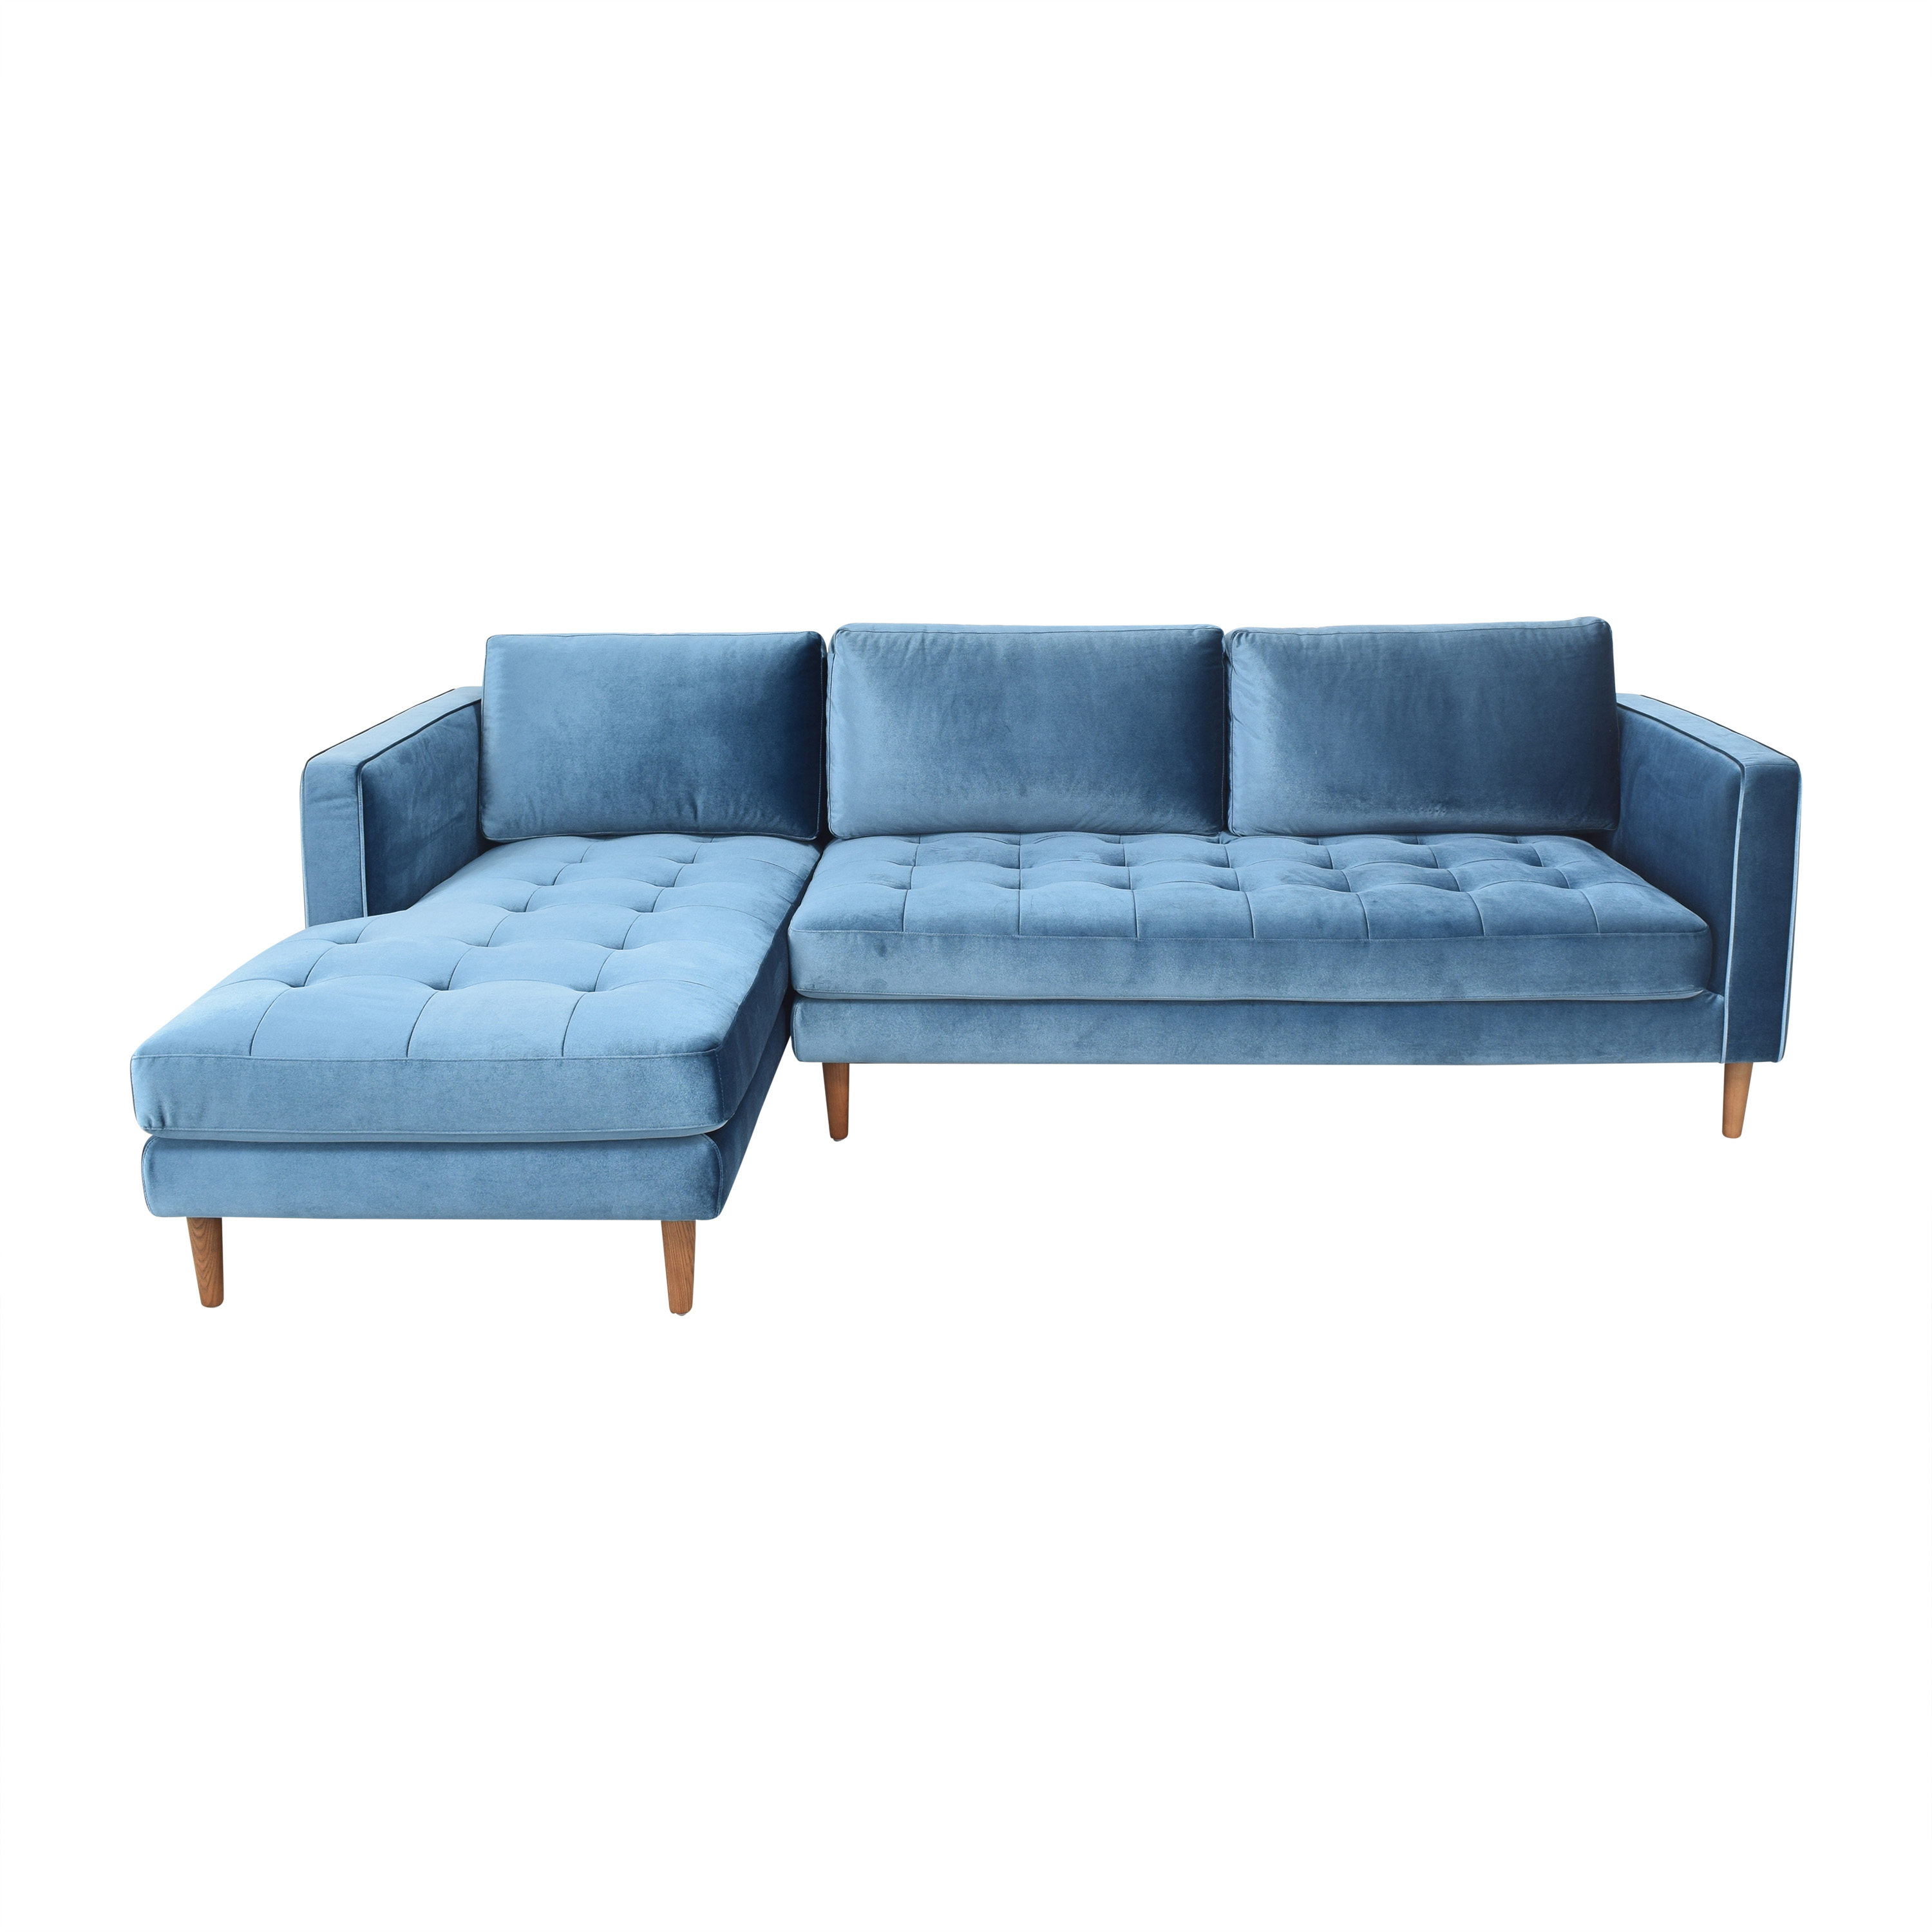 Rove Concepts Rove Concepts Luca Chaise Sectional Sofa discount